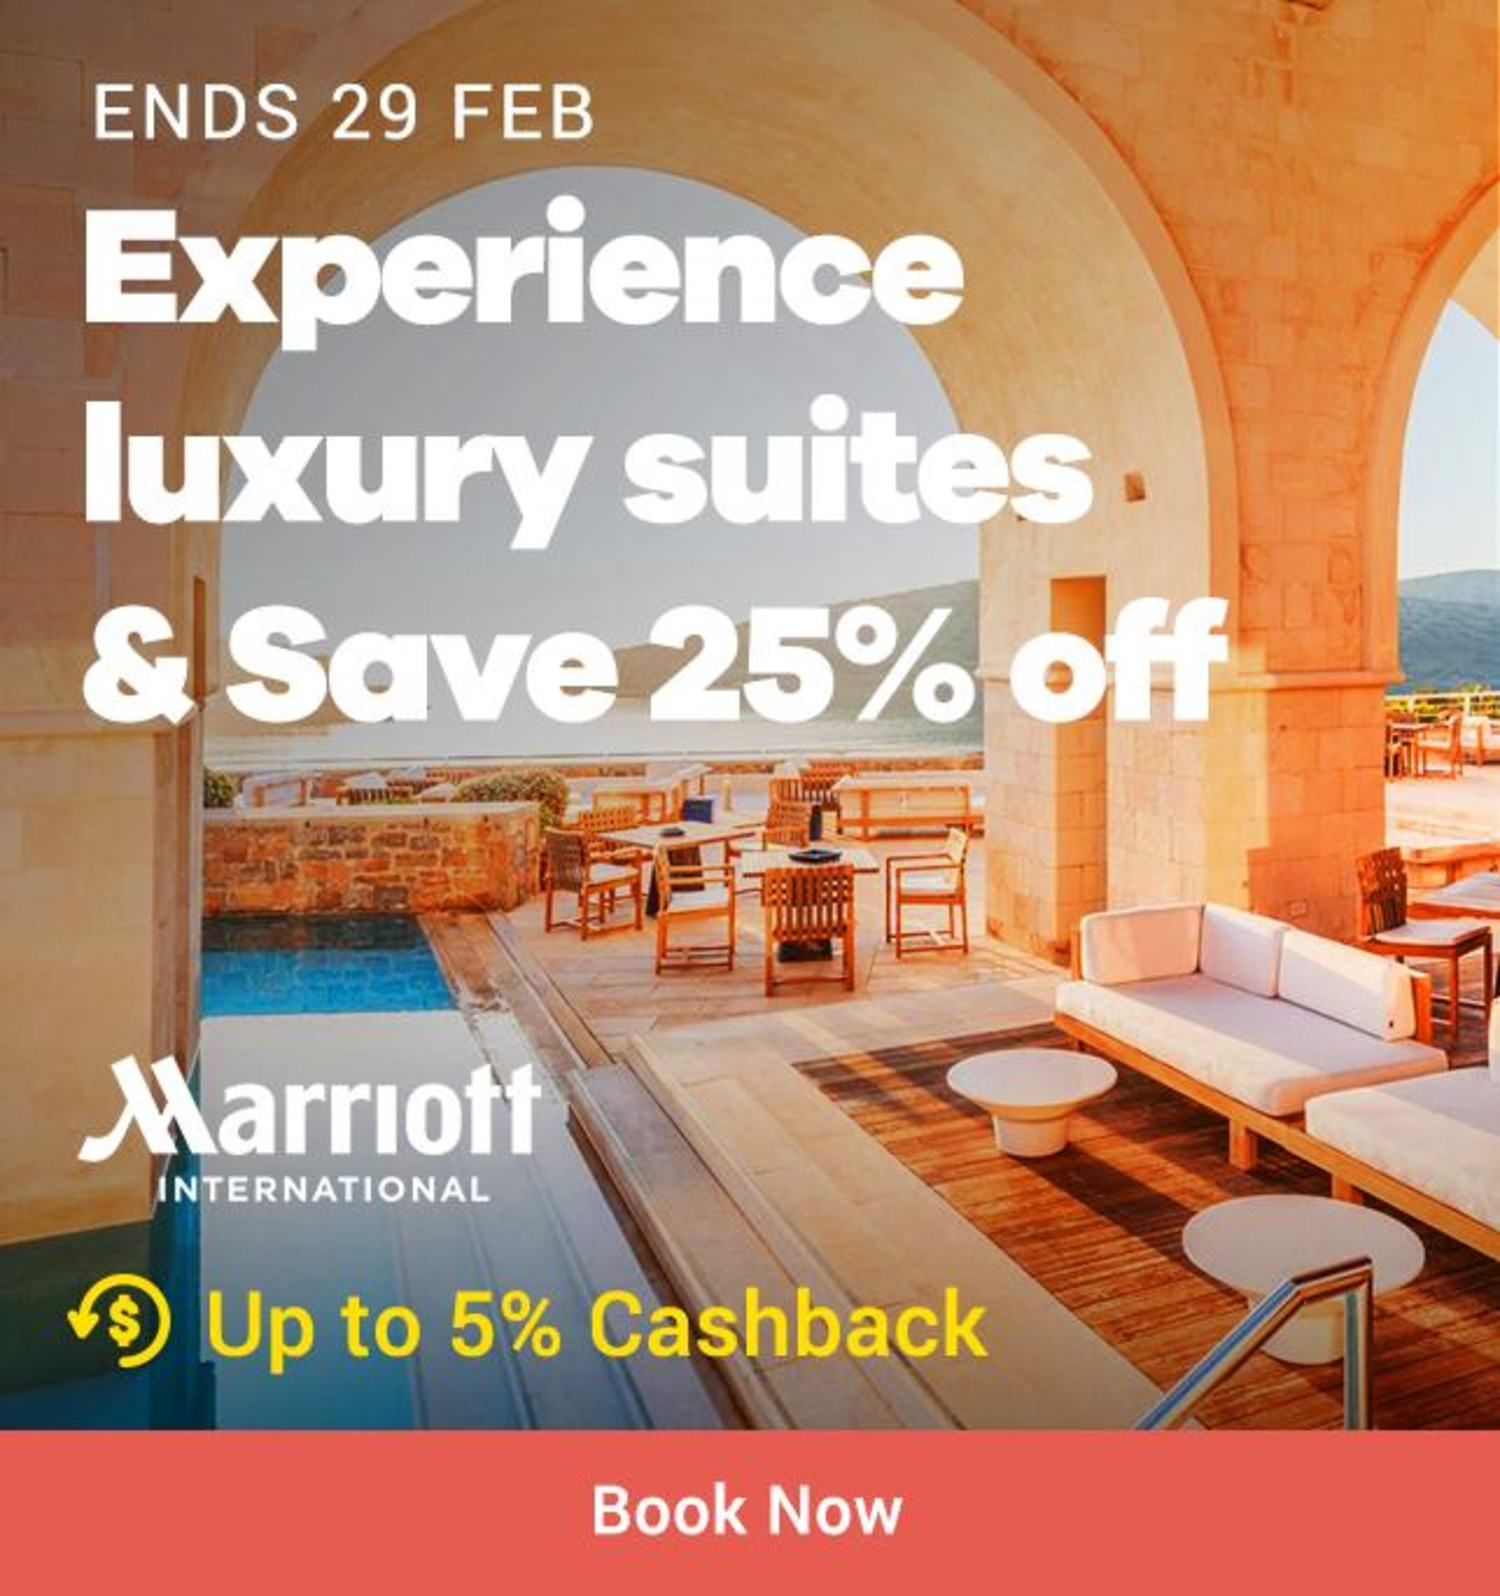 Marriot International: Experience luxury suits & Save 25% off